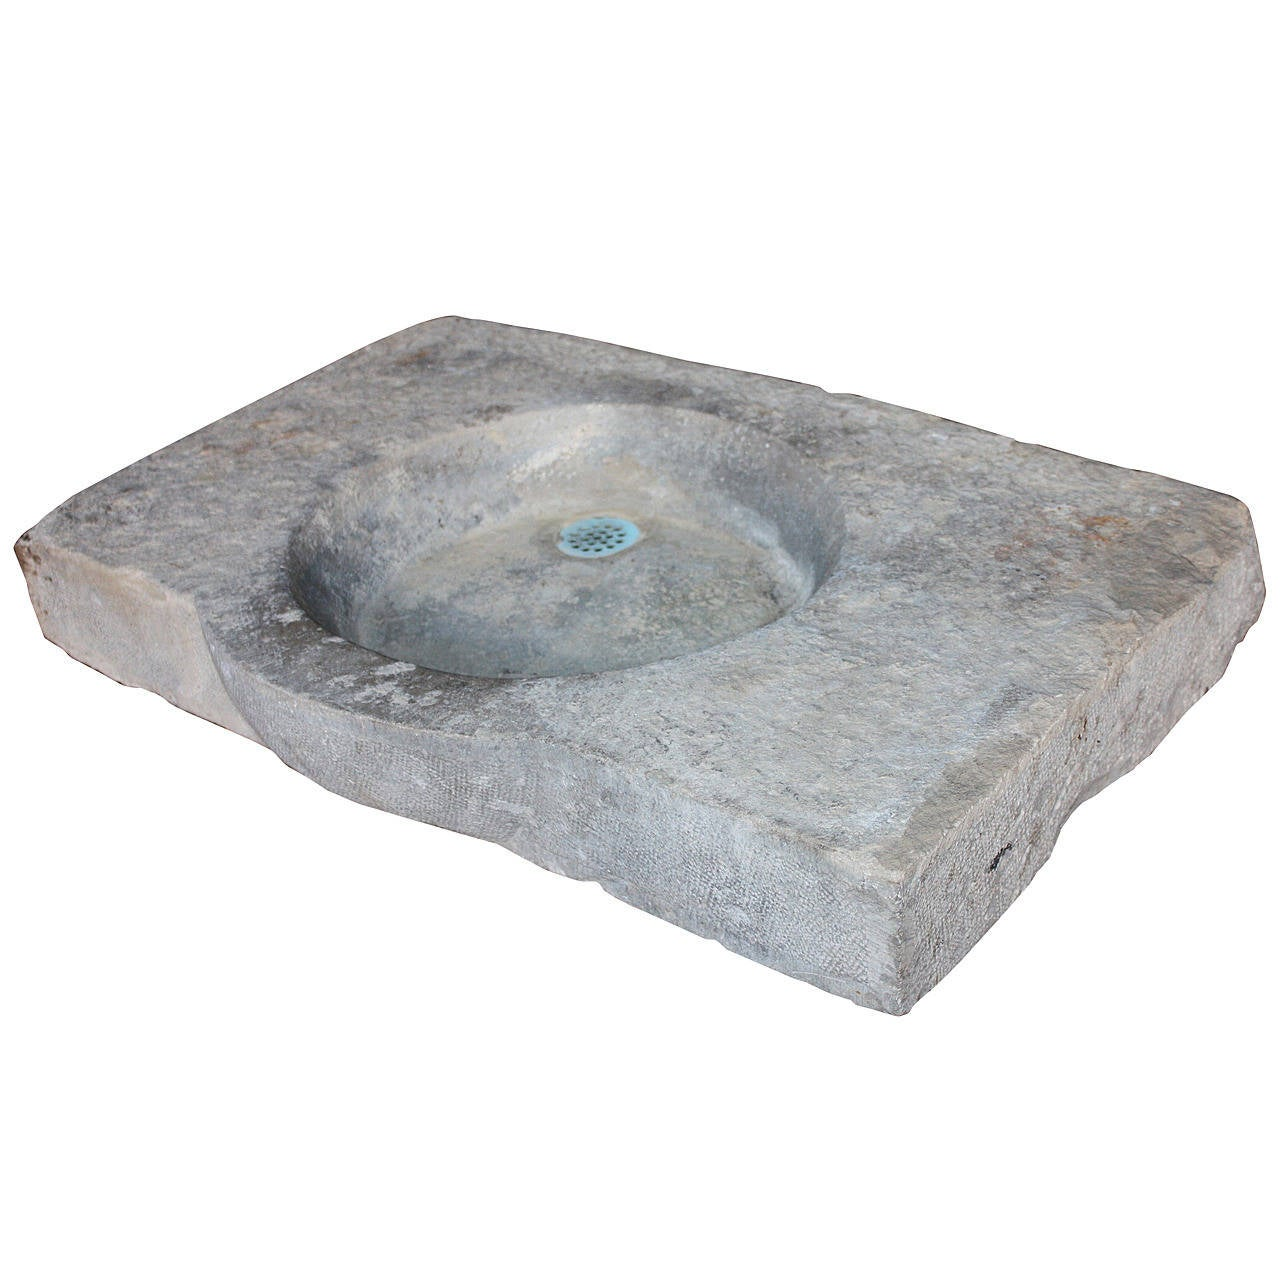 Limestone Sink : French Farmhouse Limestone Sink at 1stdibs